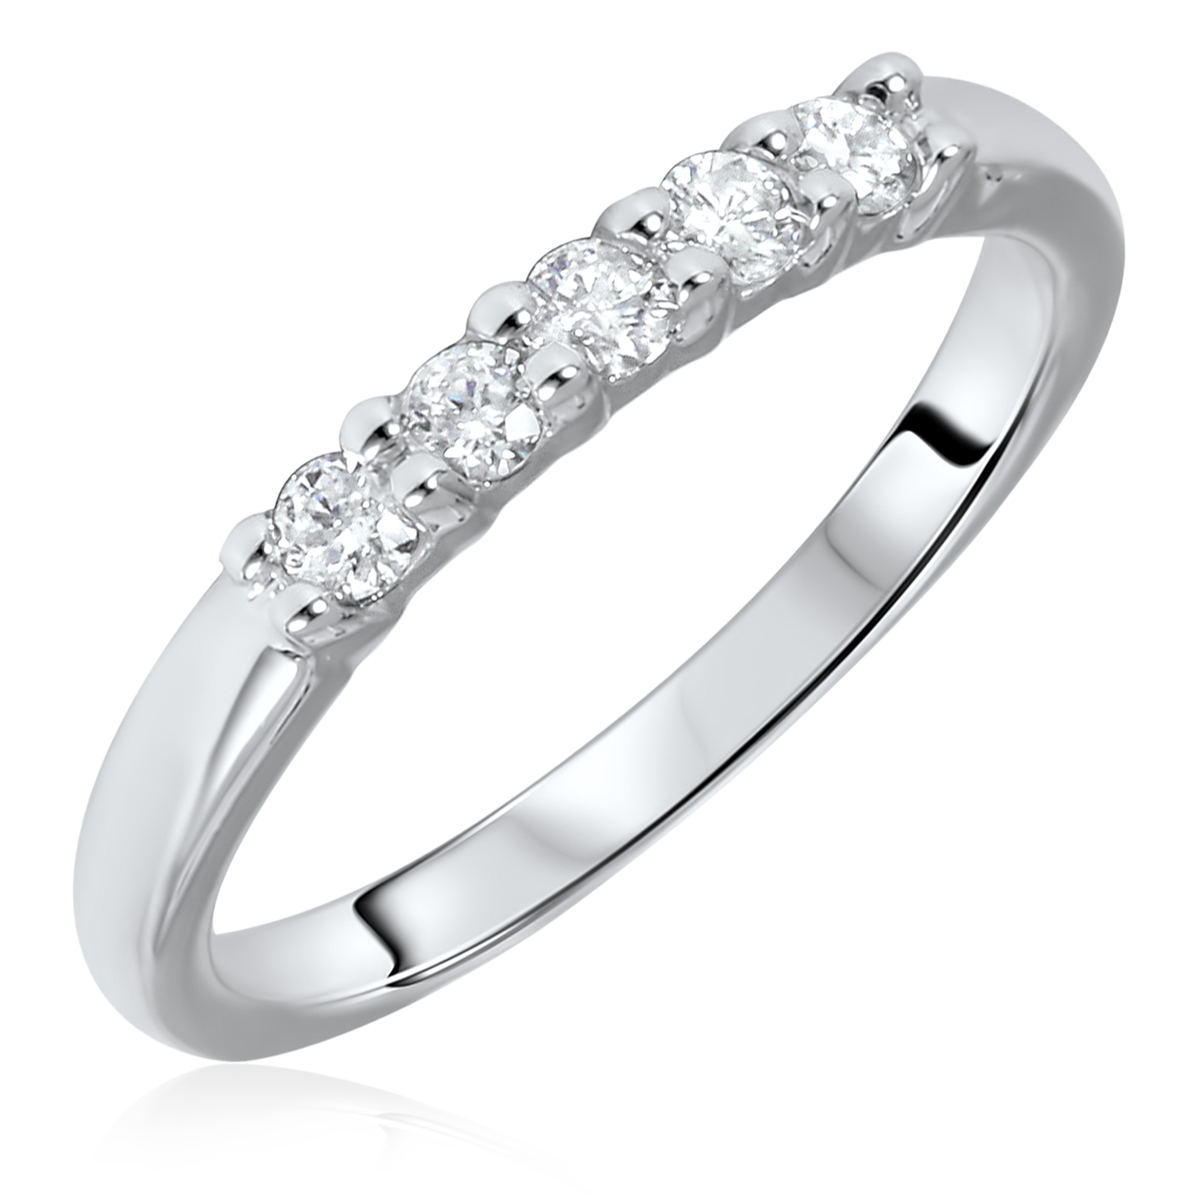 1/4 Carat T.W. Round Cut 5 Stone Diamond Anniversary Ladies Band 14K White Gold-